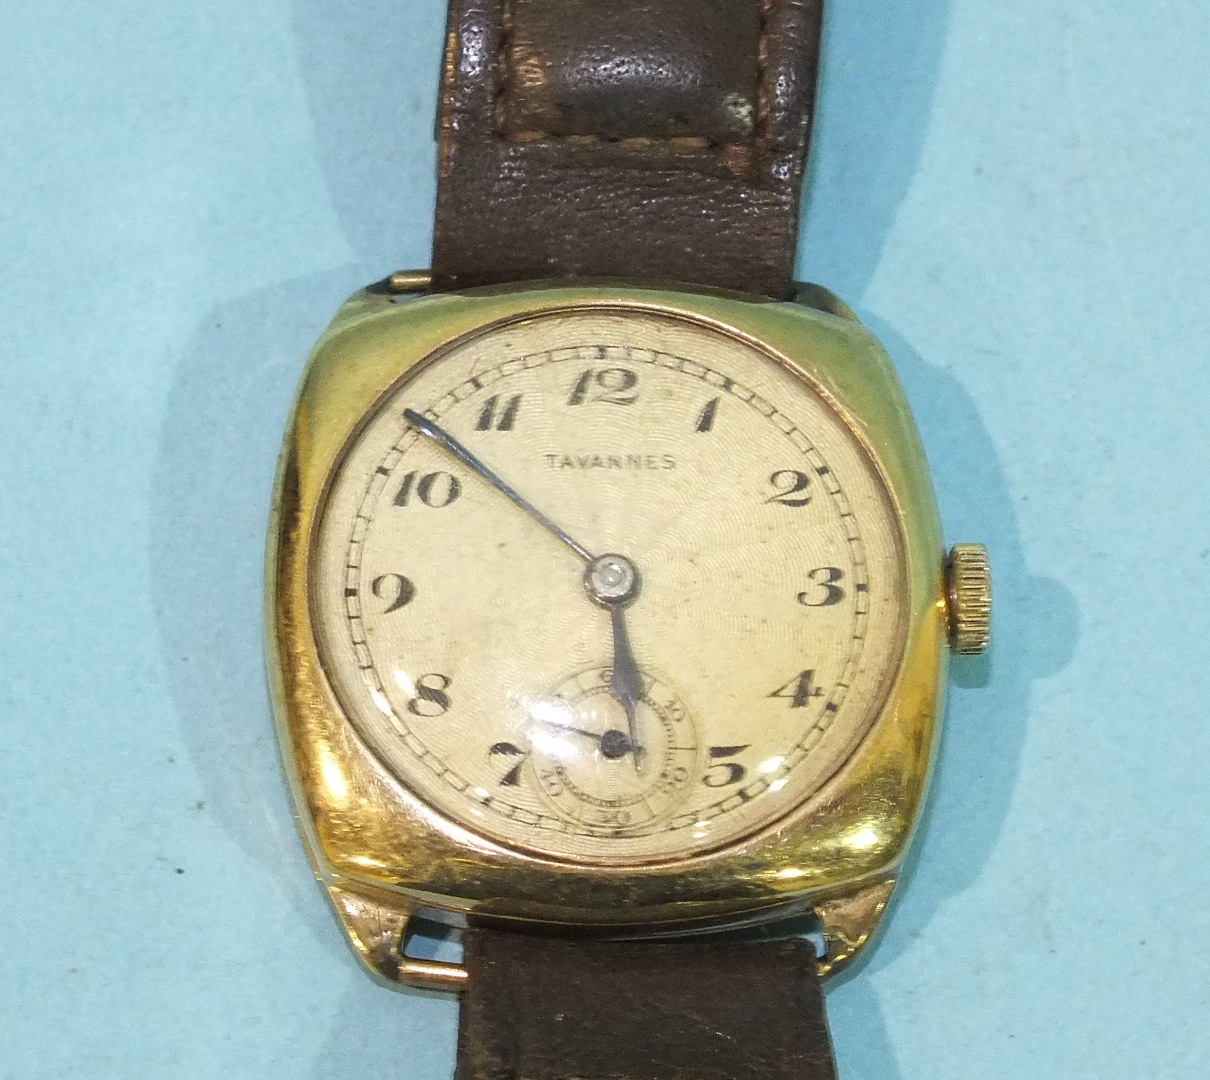 Lot 316 - Tavannes, a gents cushion-shaped 9ct gold-cased wrist watch, the movement numbered 287462, on